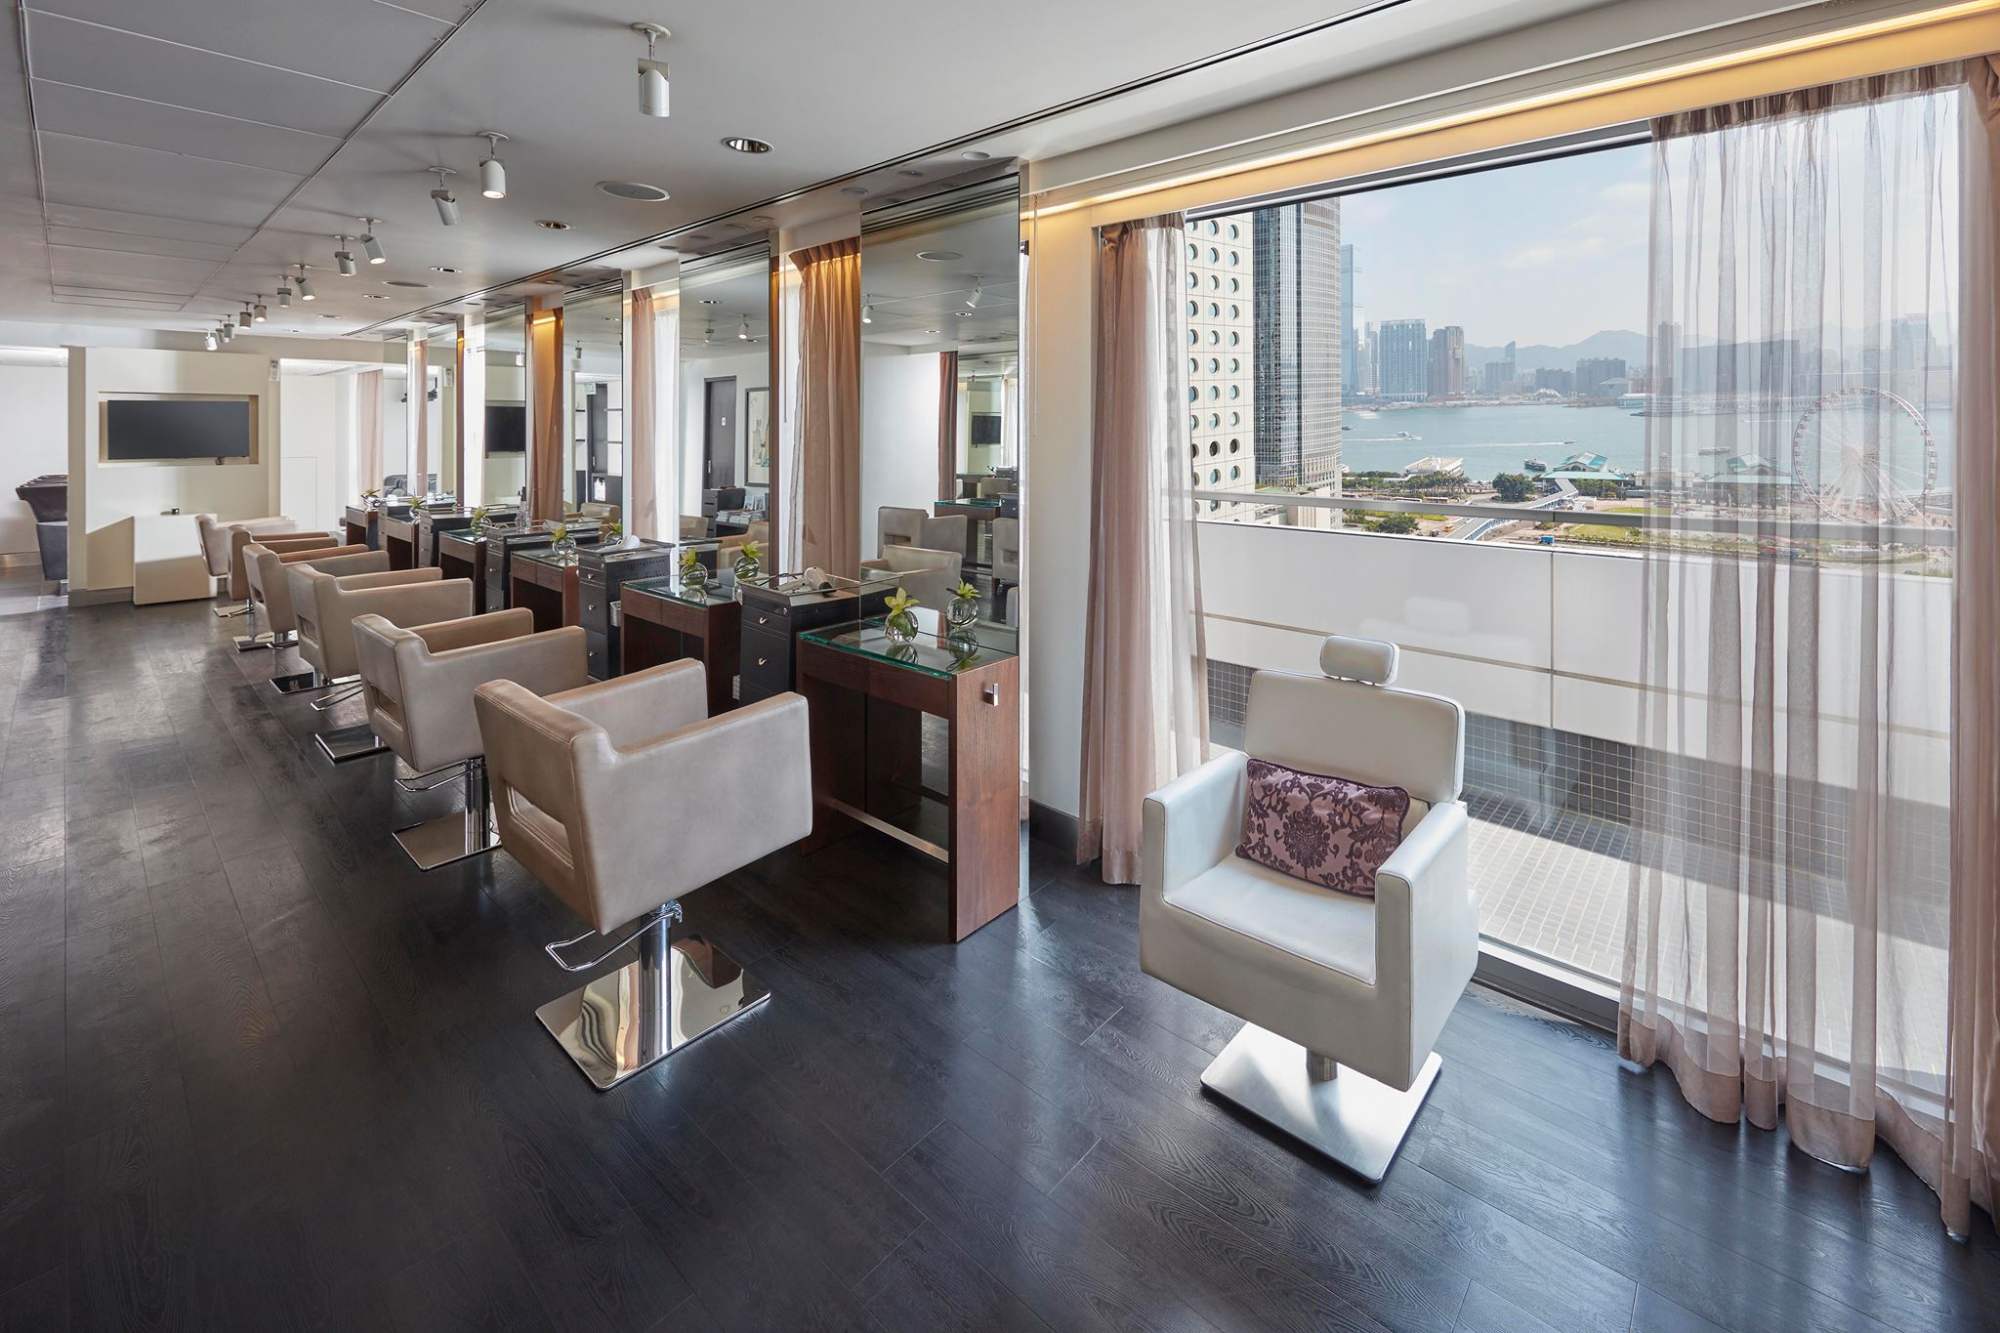 9 Luxurious Hair Salons In Hong Kong For Your Next Haircut